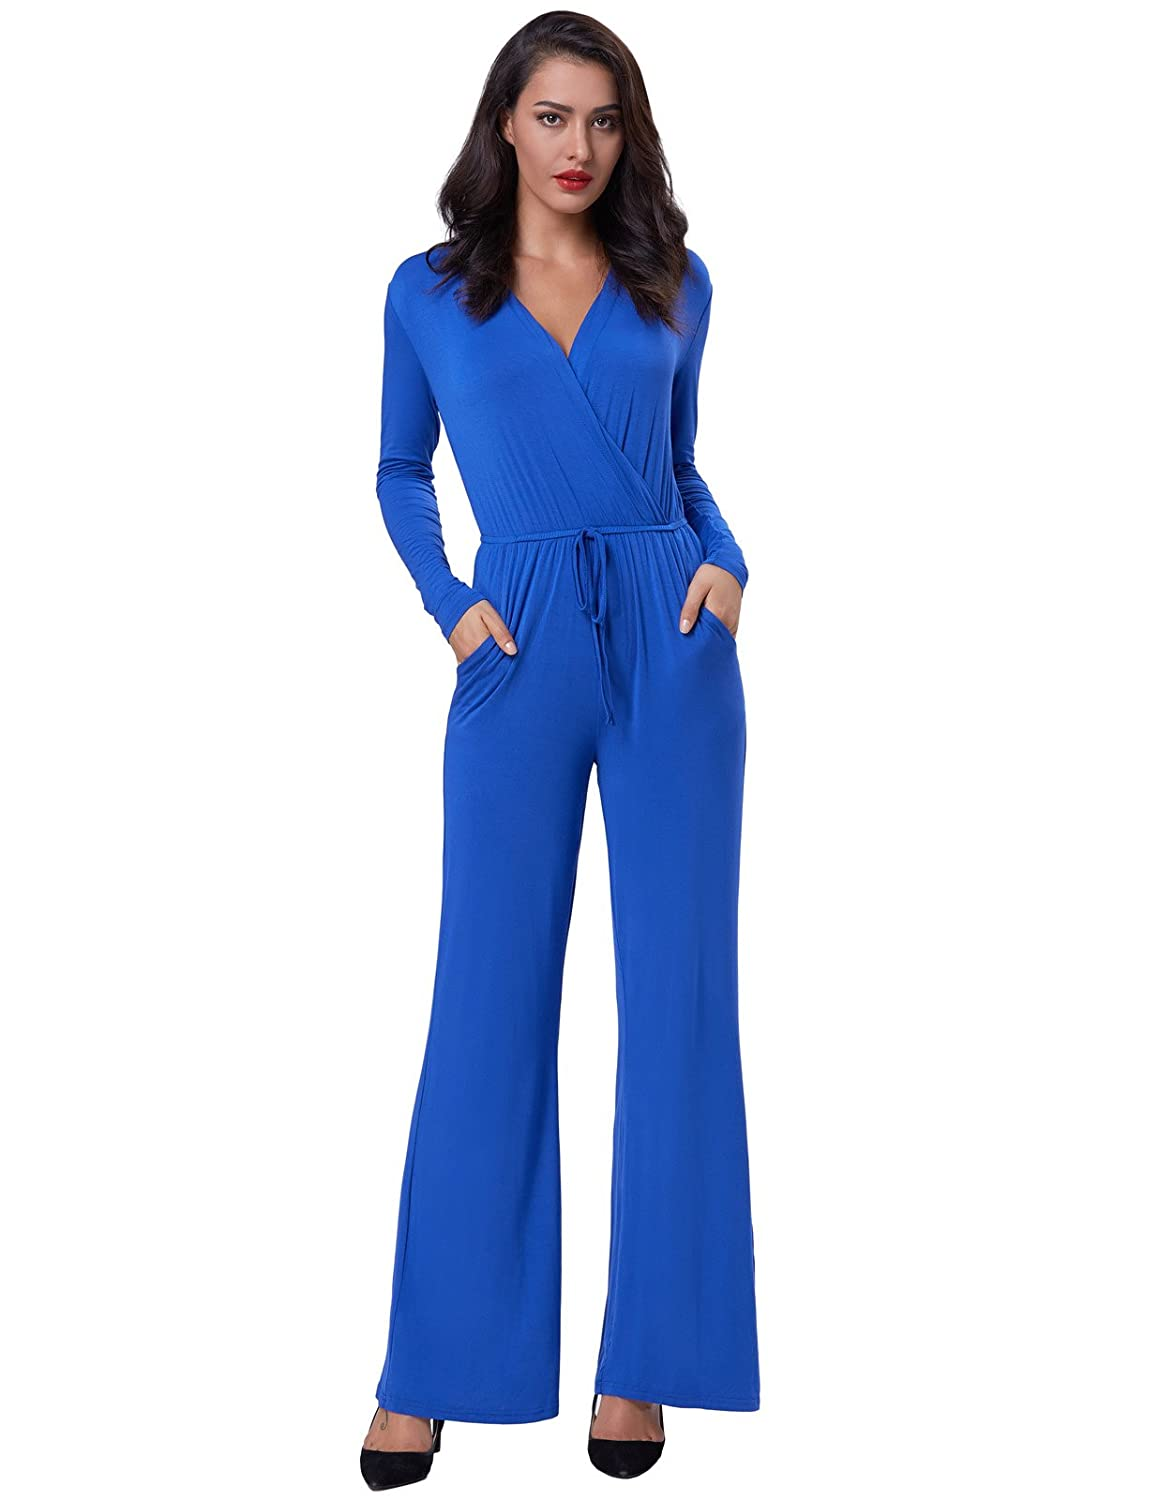 a7c3ee8ed497 Top 10 wholesale Long Sleeve Formal Jumpsuit - Chinabrands.com